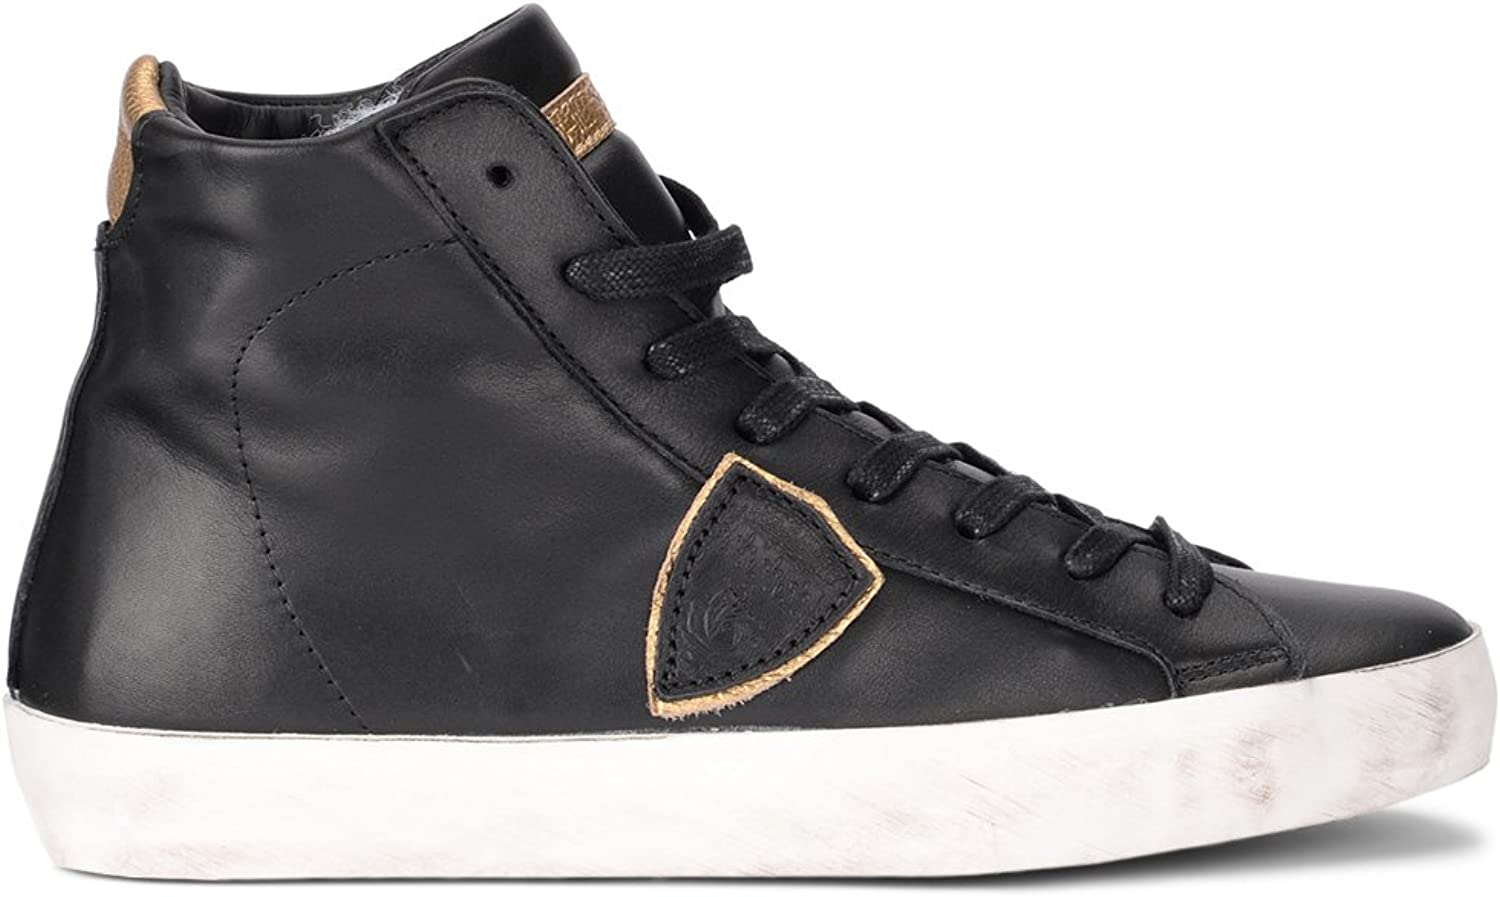 PHILIPPE MODEL Woman's Modello Paris Black and gold Leather High Sneaker